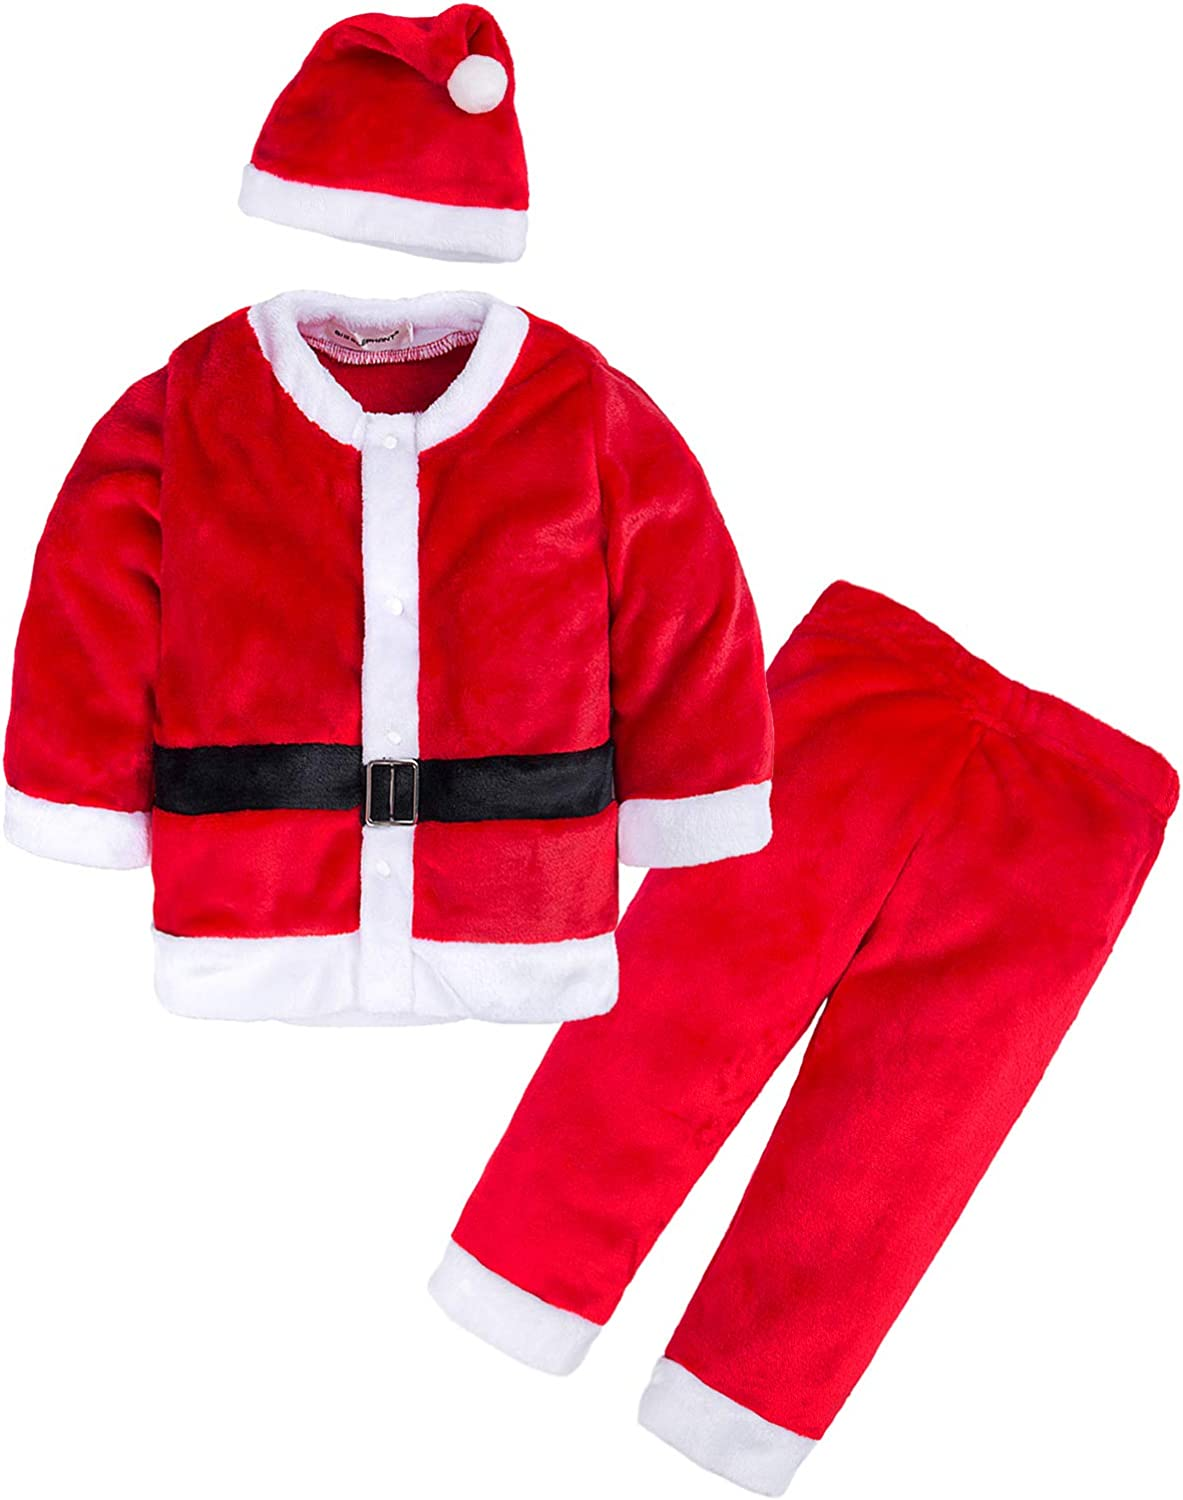 AGUDAN Boys & Girls Unisex 2 Pieces Shirt & Pant Christmas Romper Jumpsuit Pajamas Long Sleeve Outfit Xmas Clothes with Hat